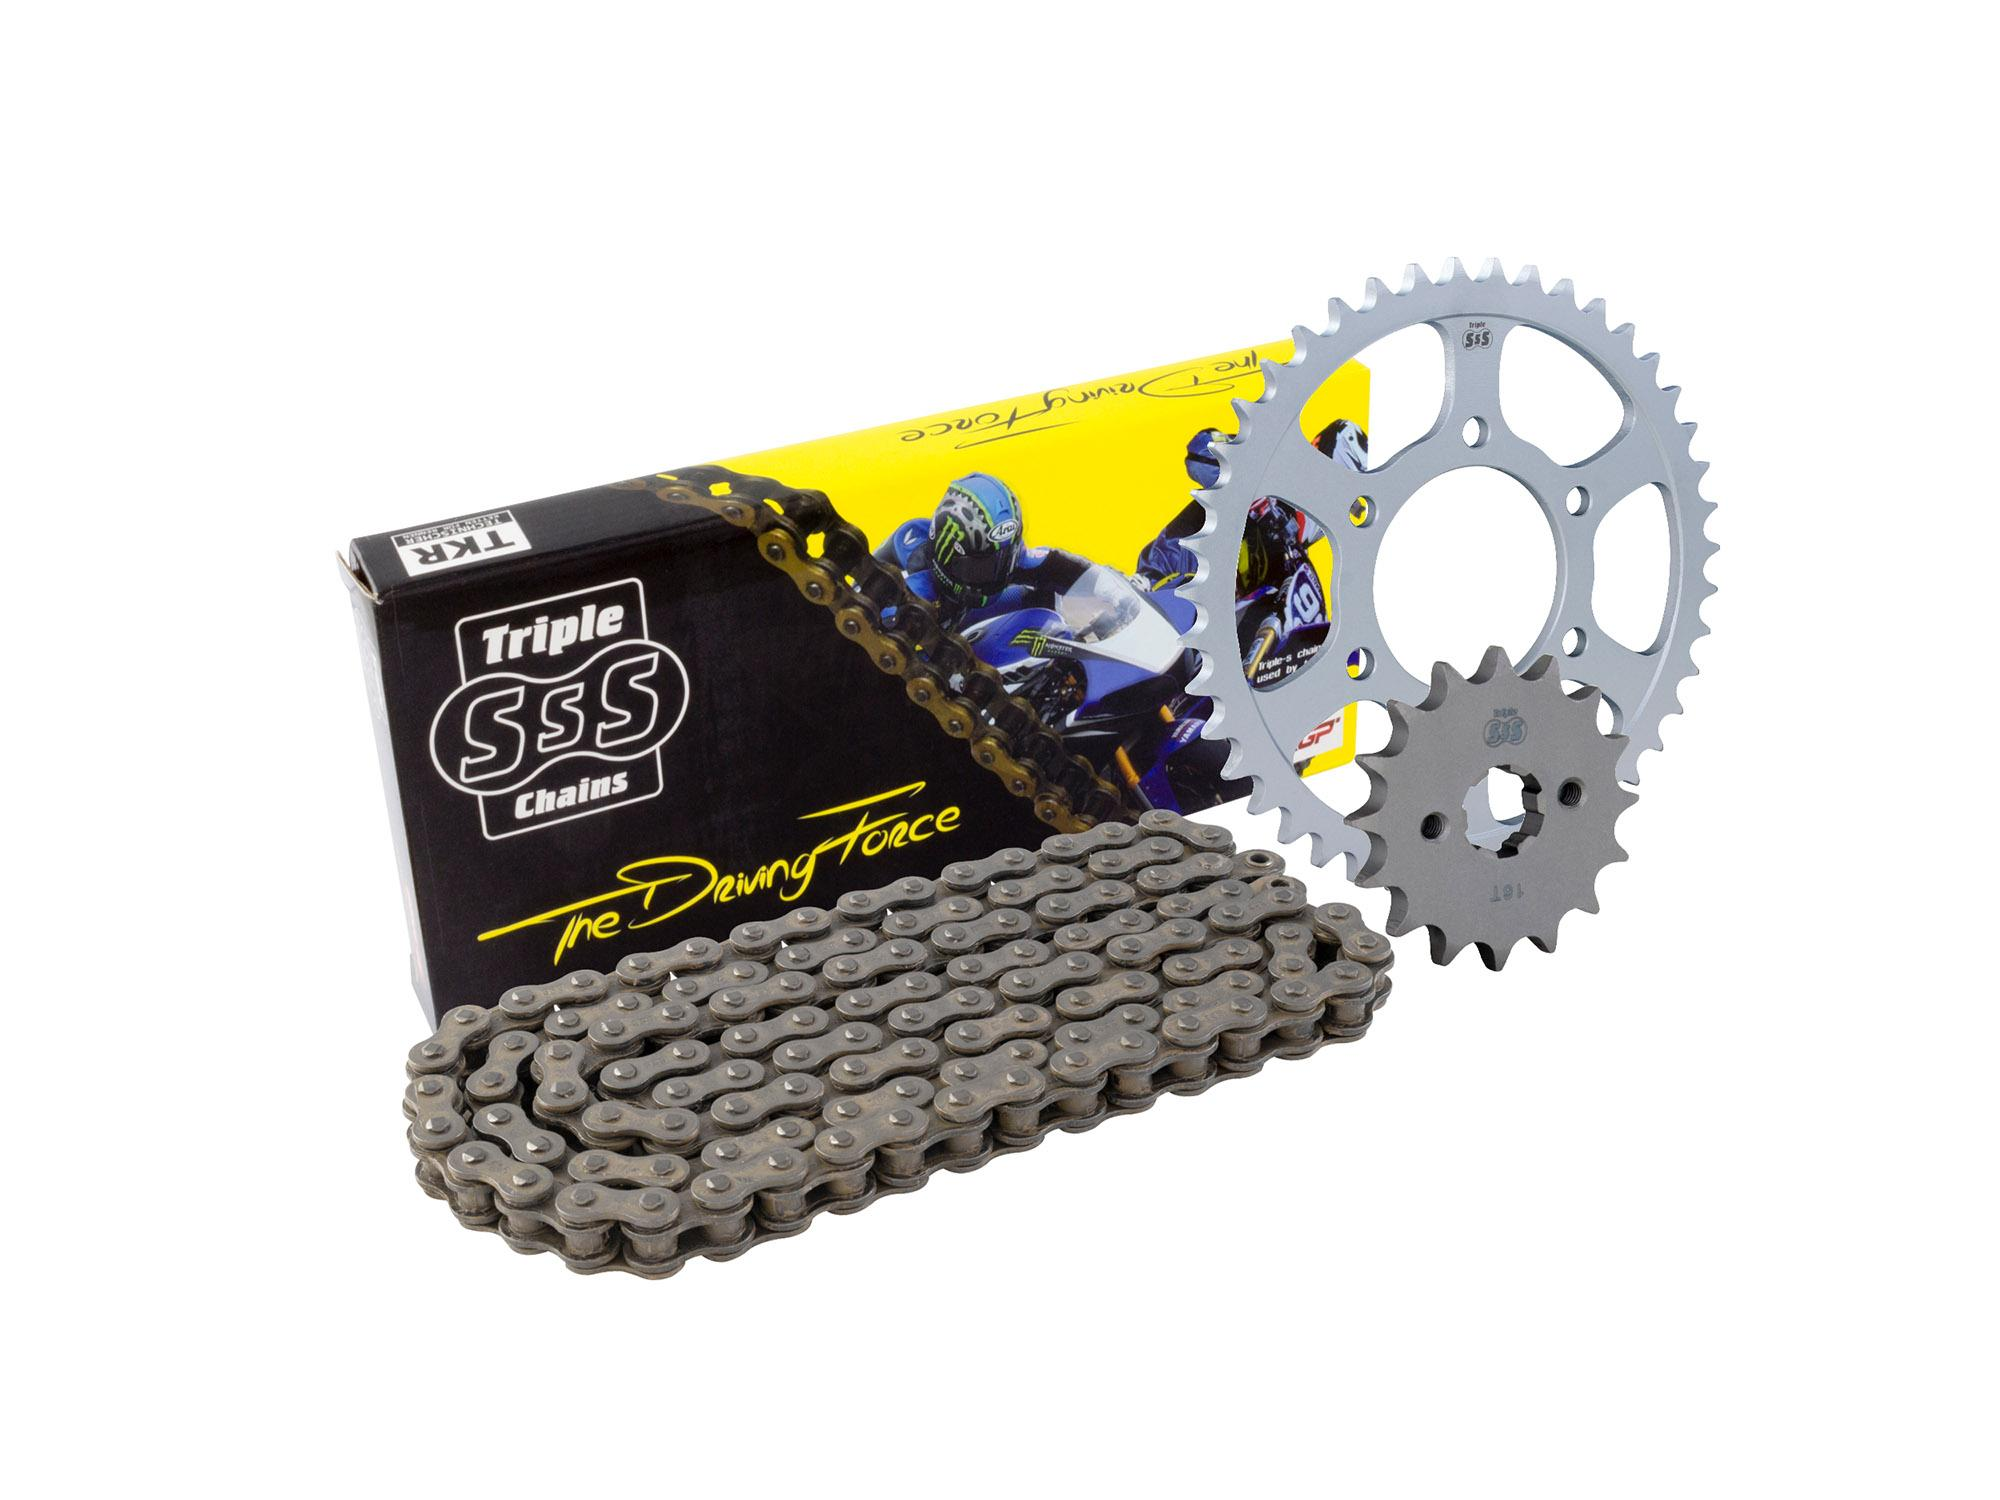 Ducati 620 / S Monster ie / Dark 02-03 Chain & Sprocket Kit: 15T Front, 46T Rear, HD O-Ring Black Chain 520H 106Link